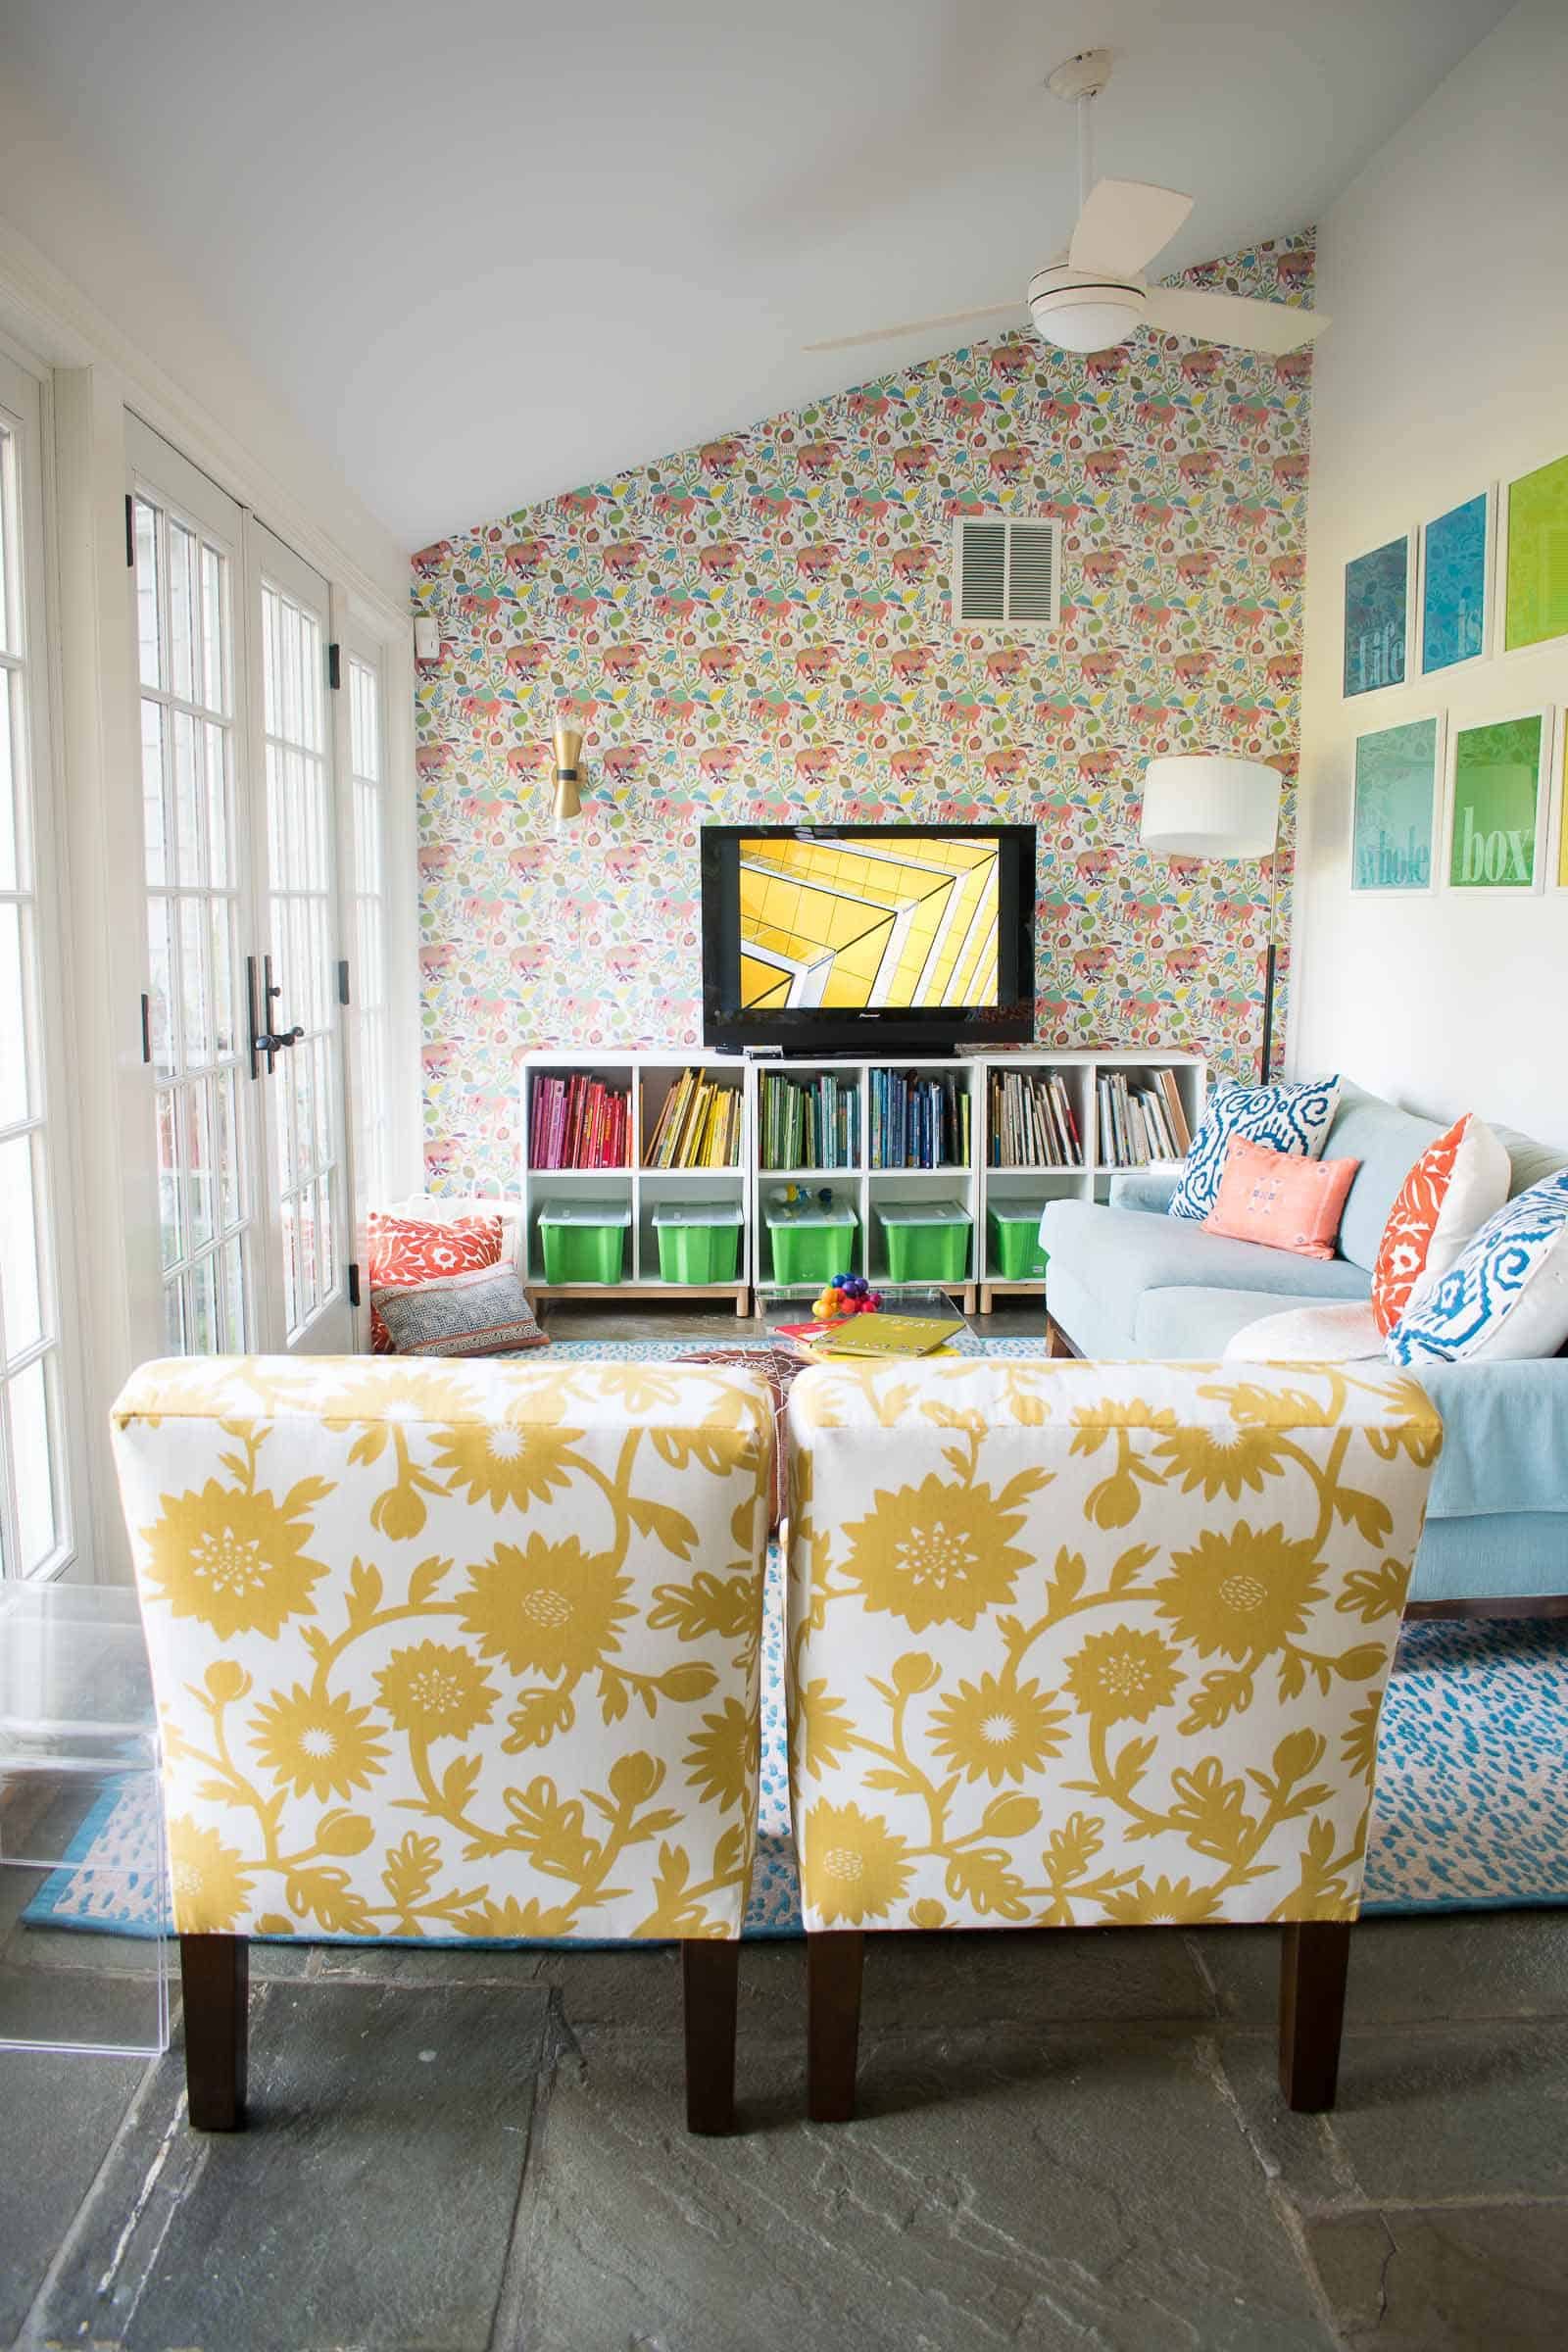 yellow patterned slipper chairs